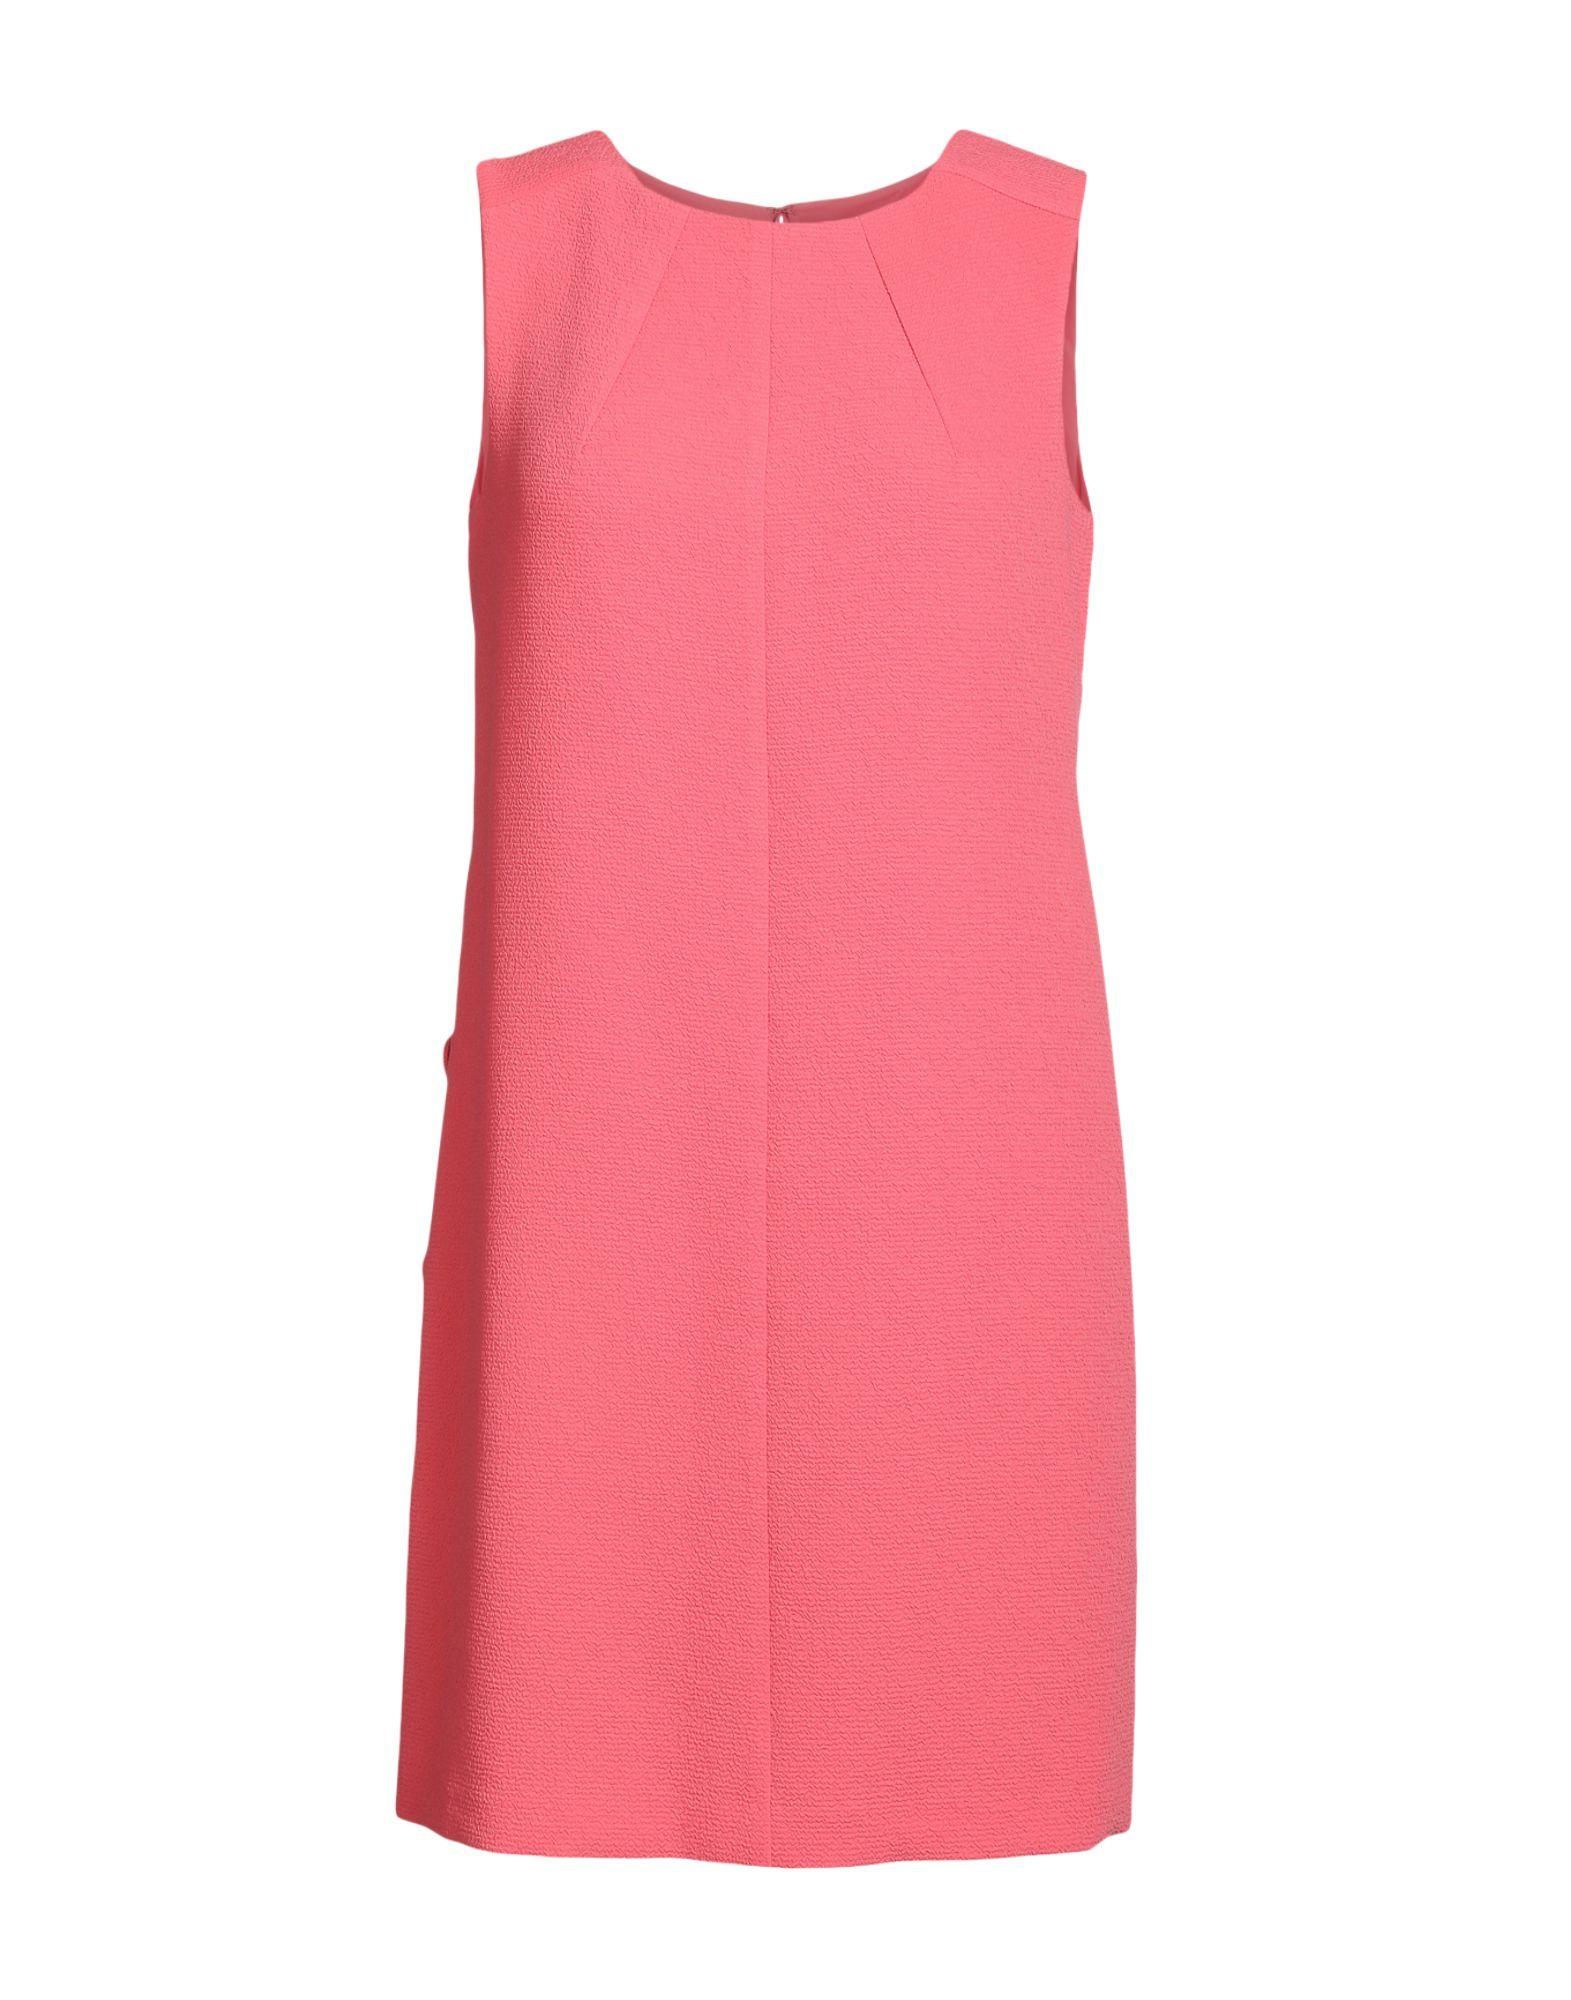 Armani Jeans Short Dress In Coral